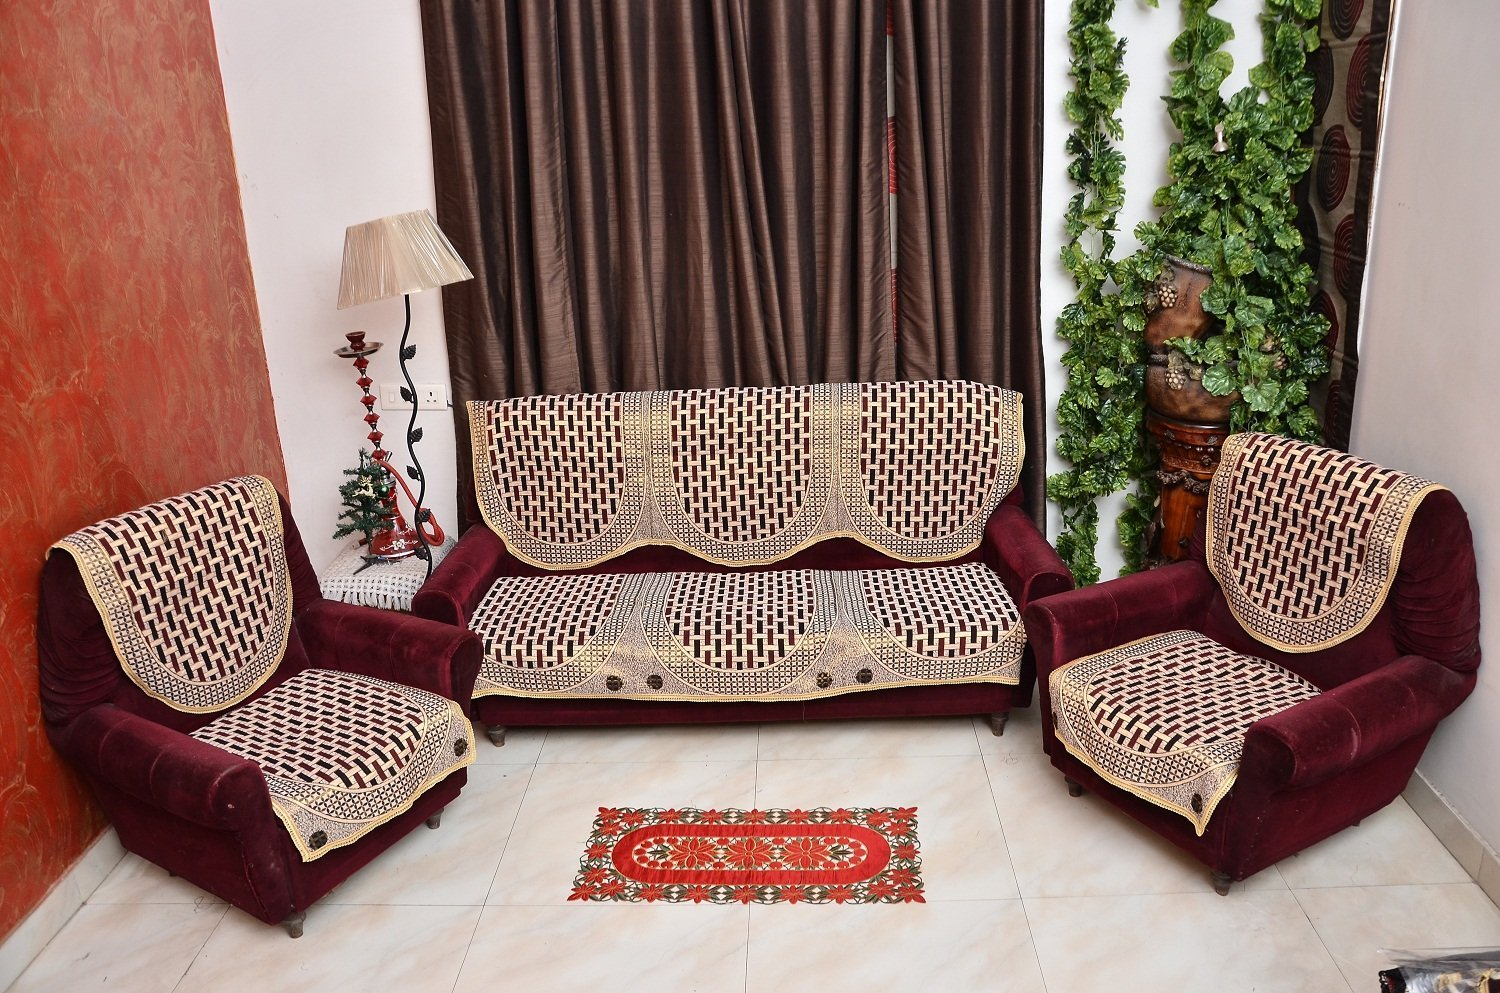 buy rshp 5 seater maroon coffee cotton sofa cover online at low prices VBDFWEM